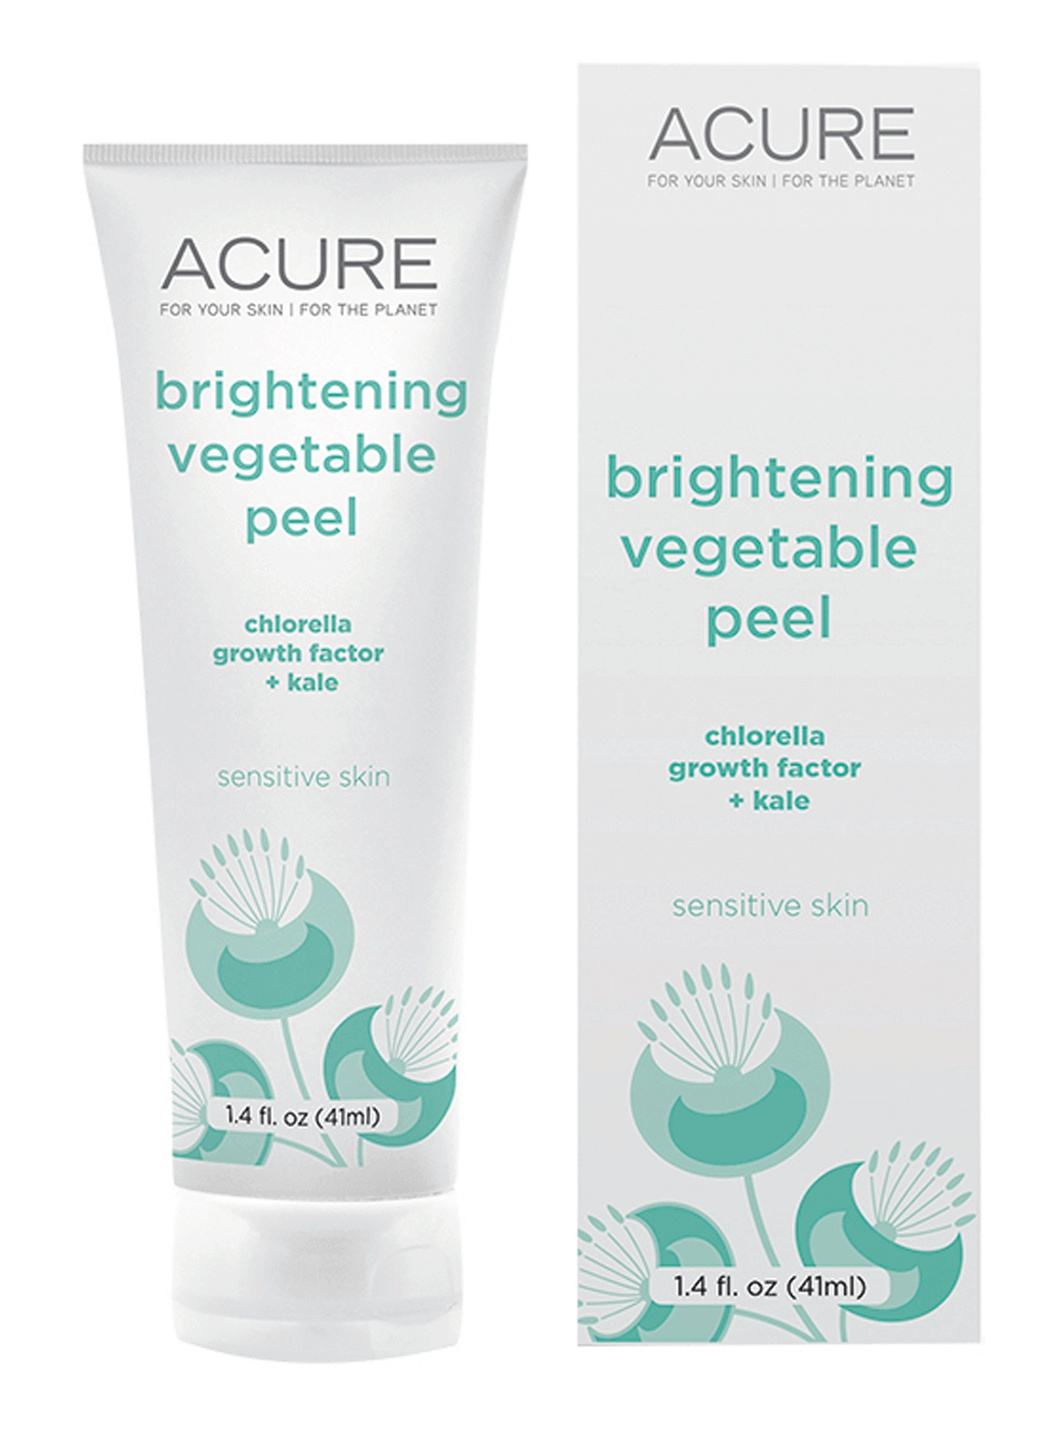 Acure Brightening Vegetable Peel (Chlorella And Kale)